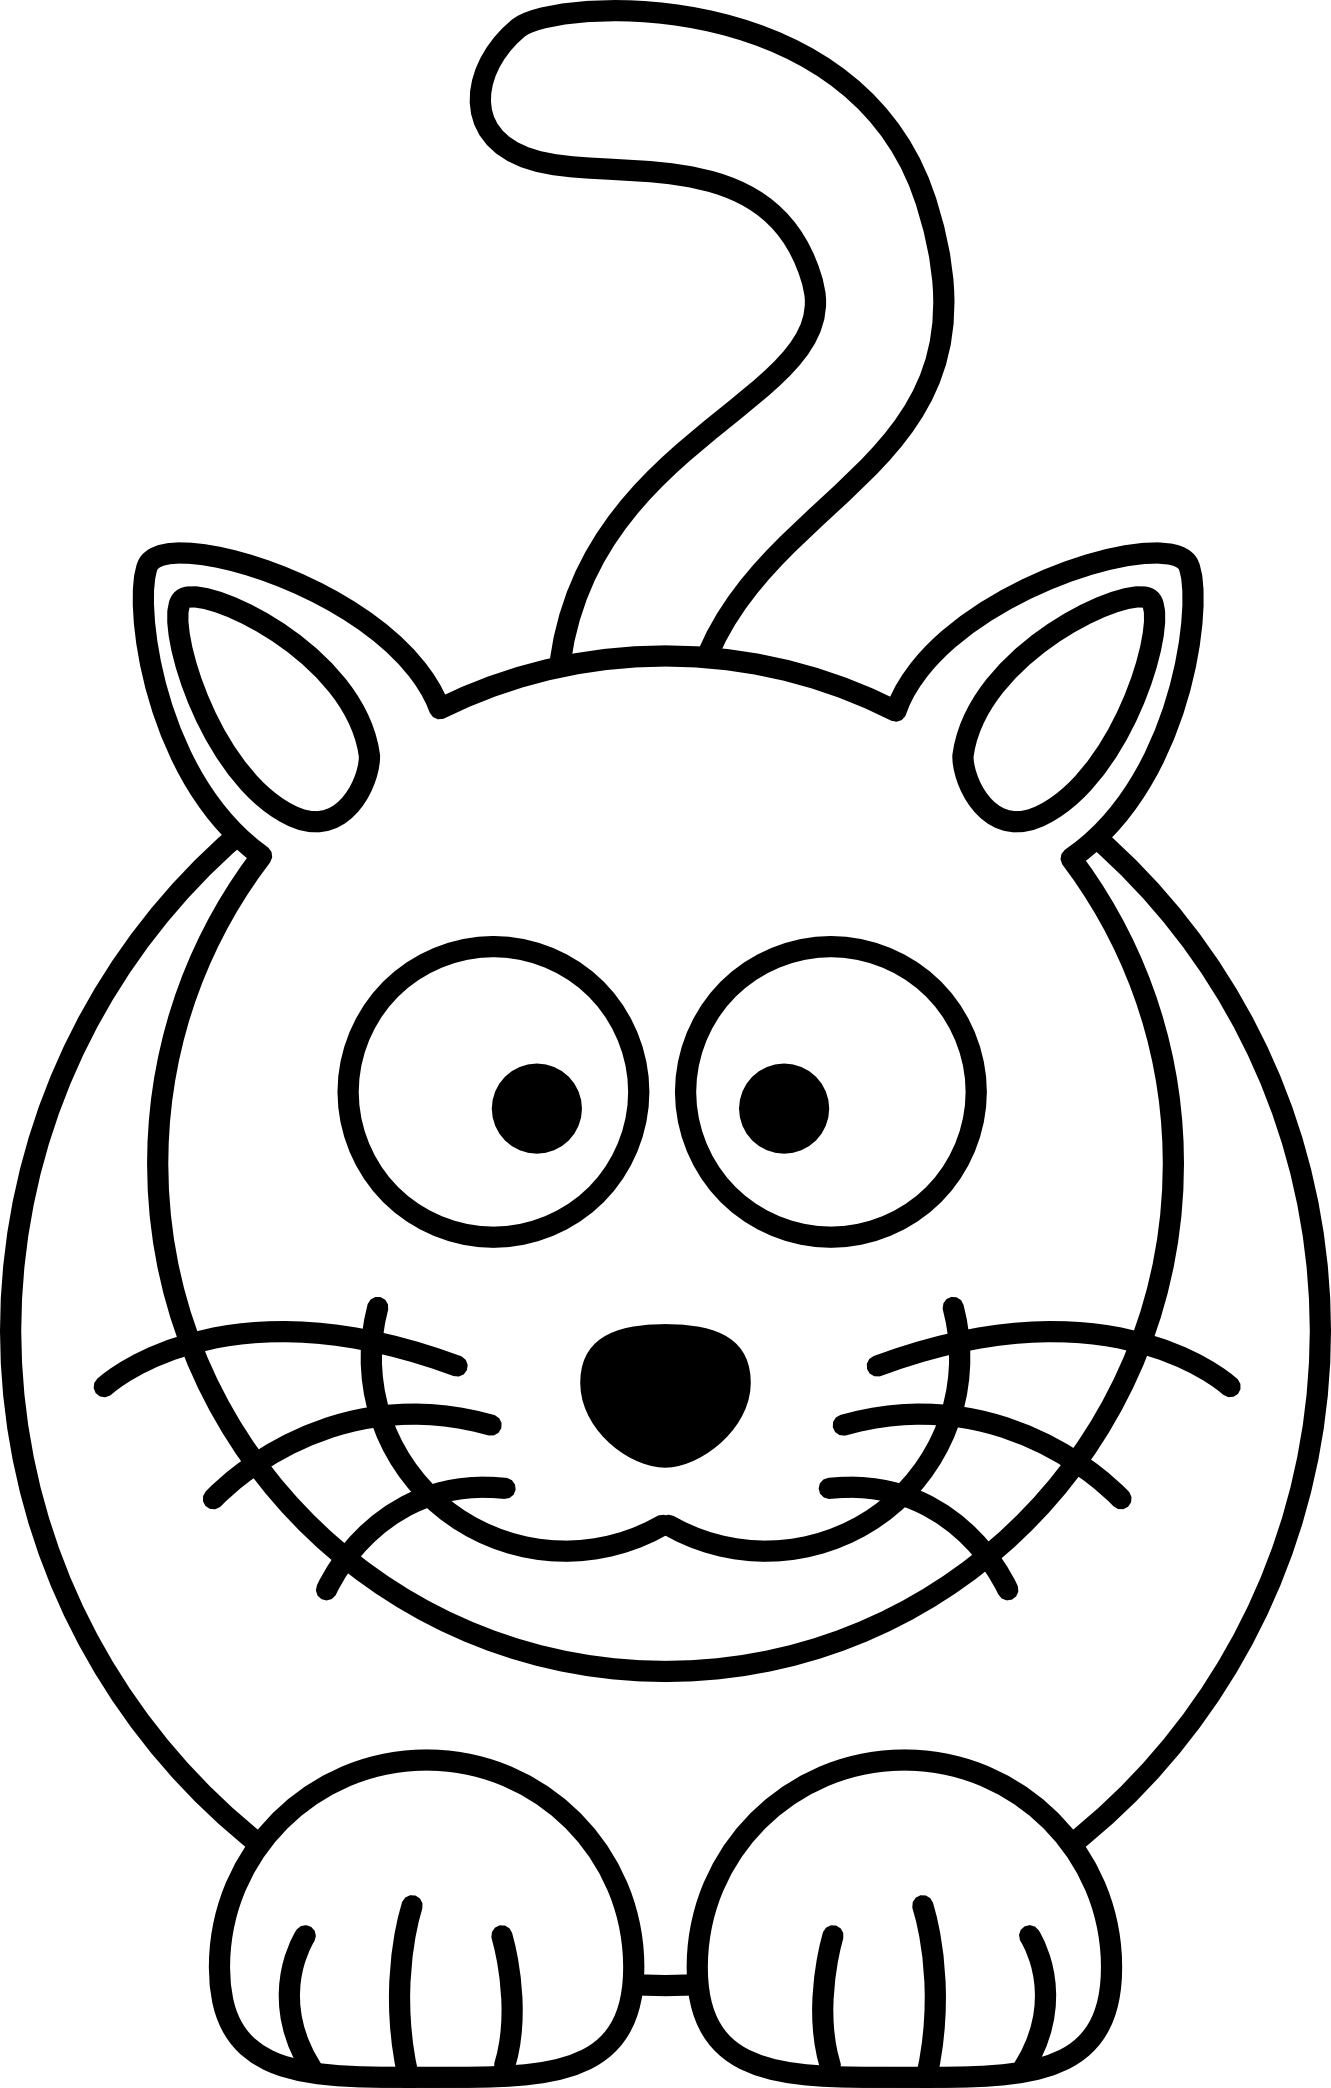 Easy Cat Drawing At Getdrawings Com Free For Personal Use Easy Cat